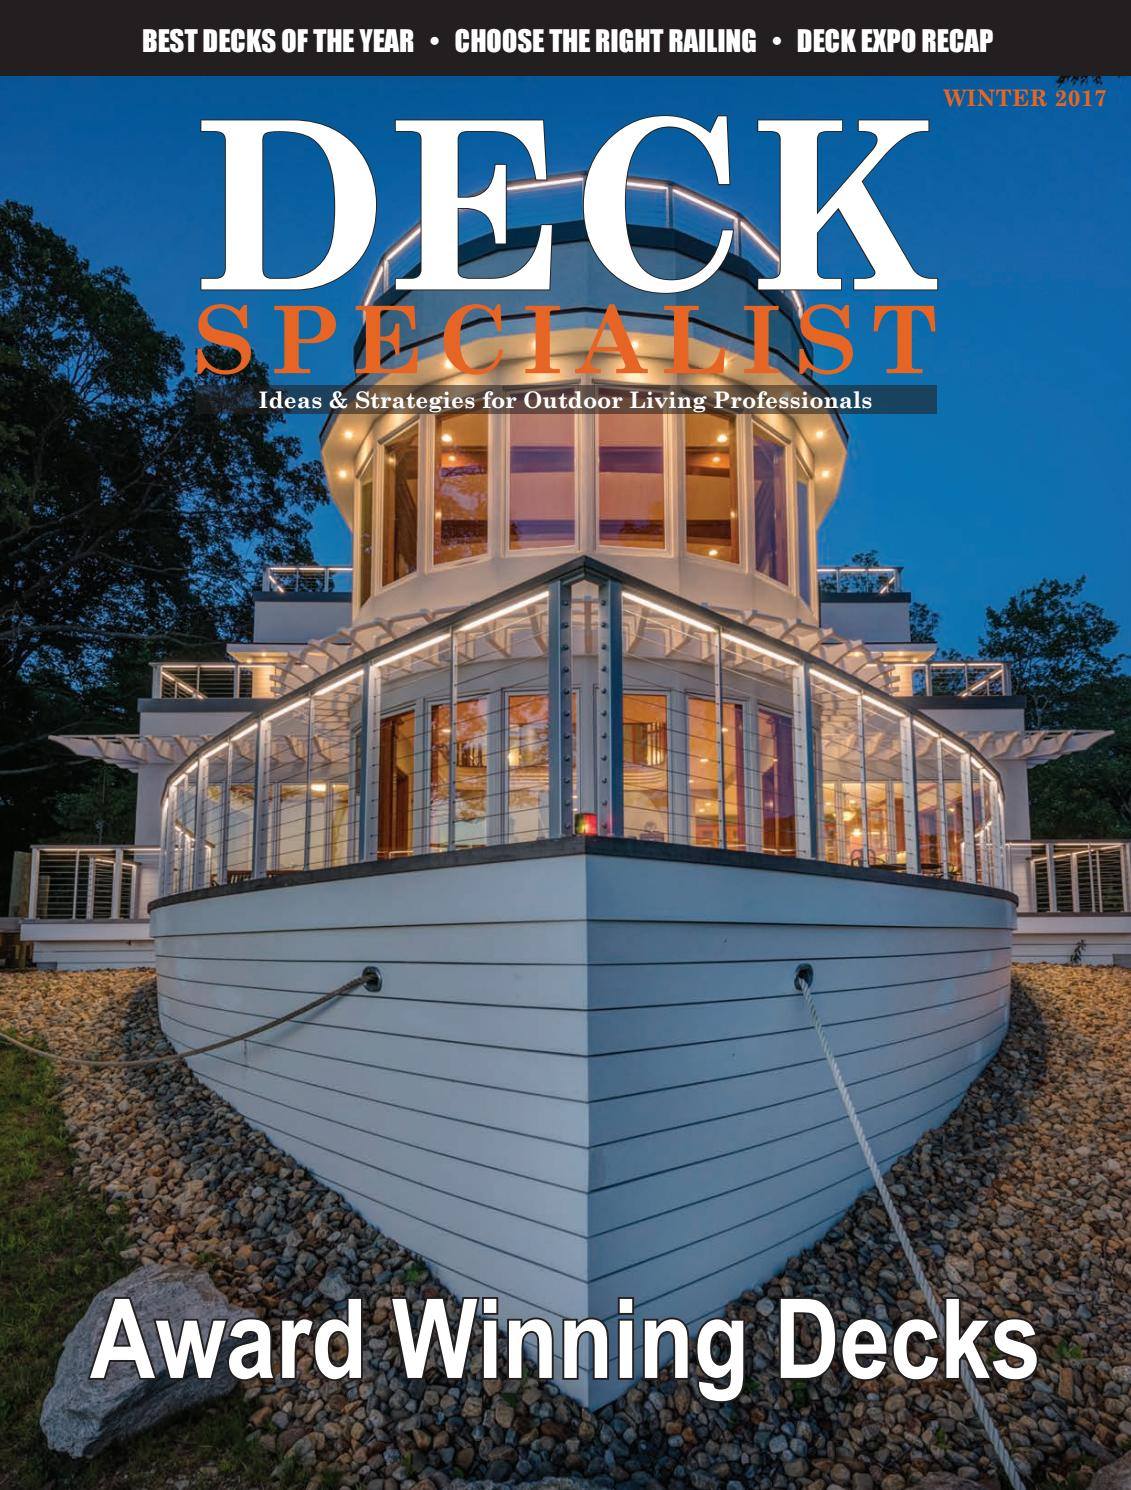 Deck Specialist Winter 2017 by 526 Media Group - issuu